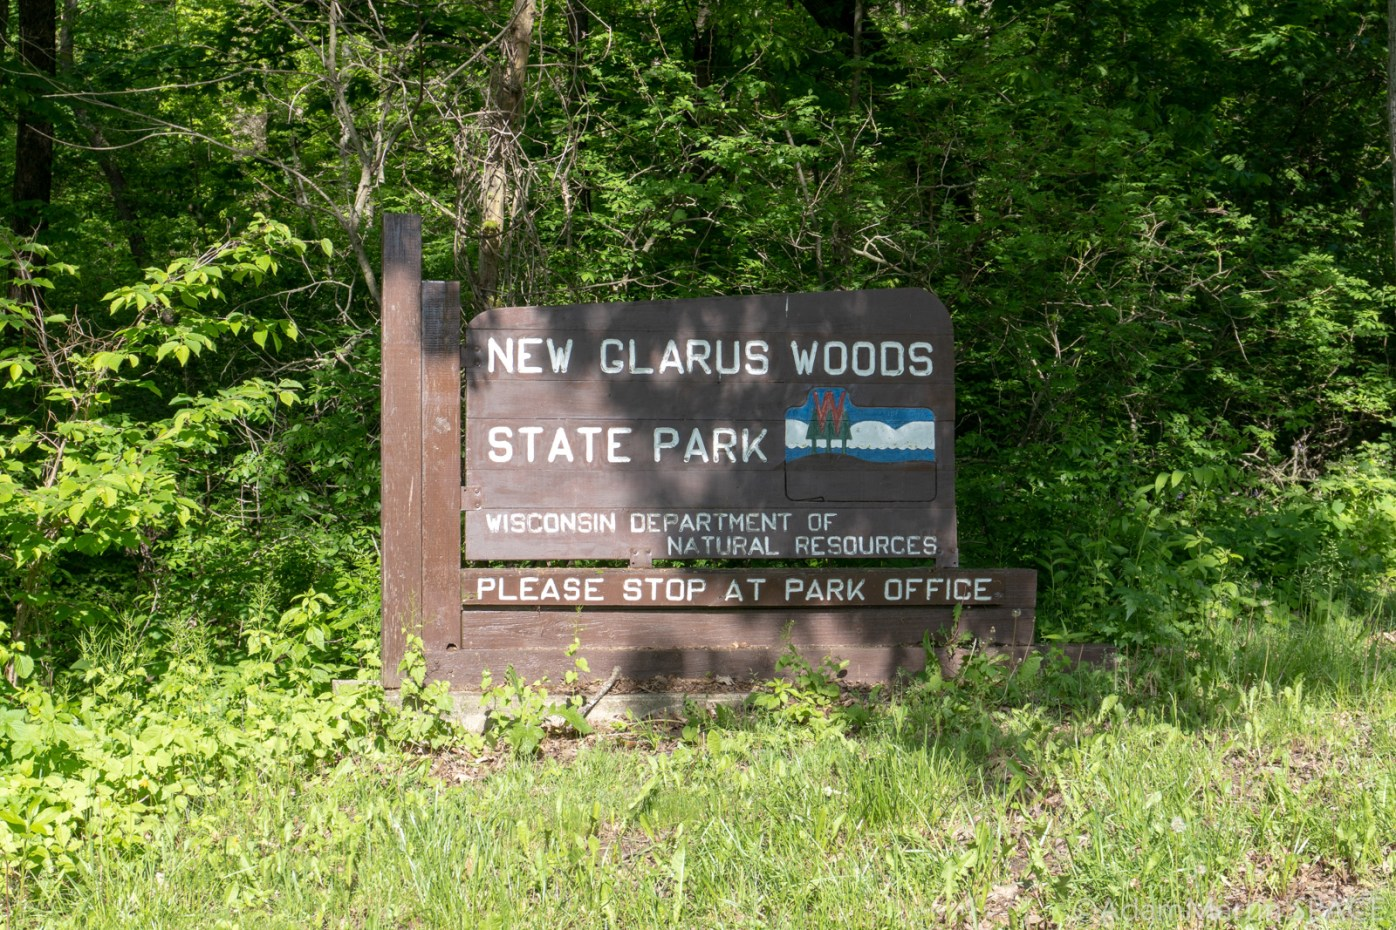 New Glarus Woods State Park - Entrance Sign